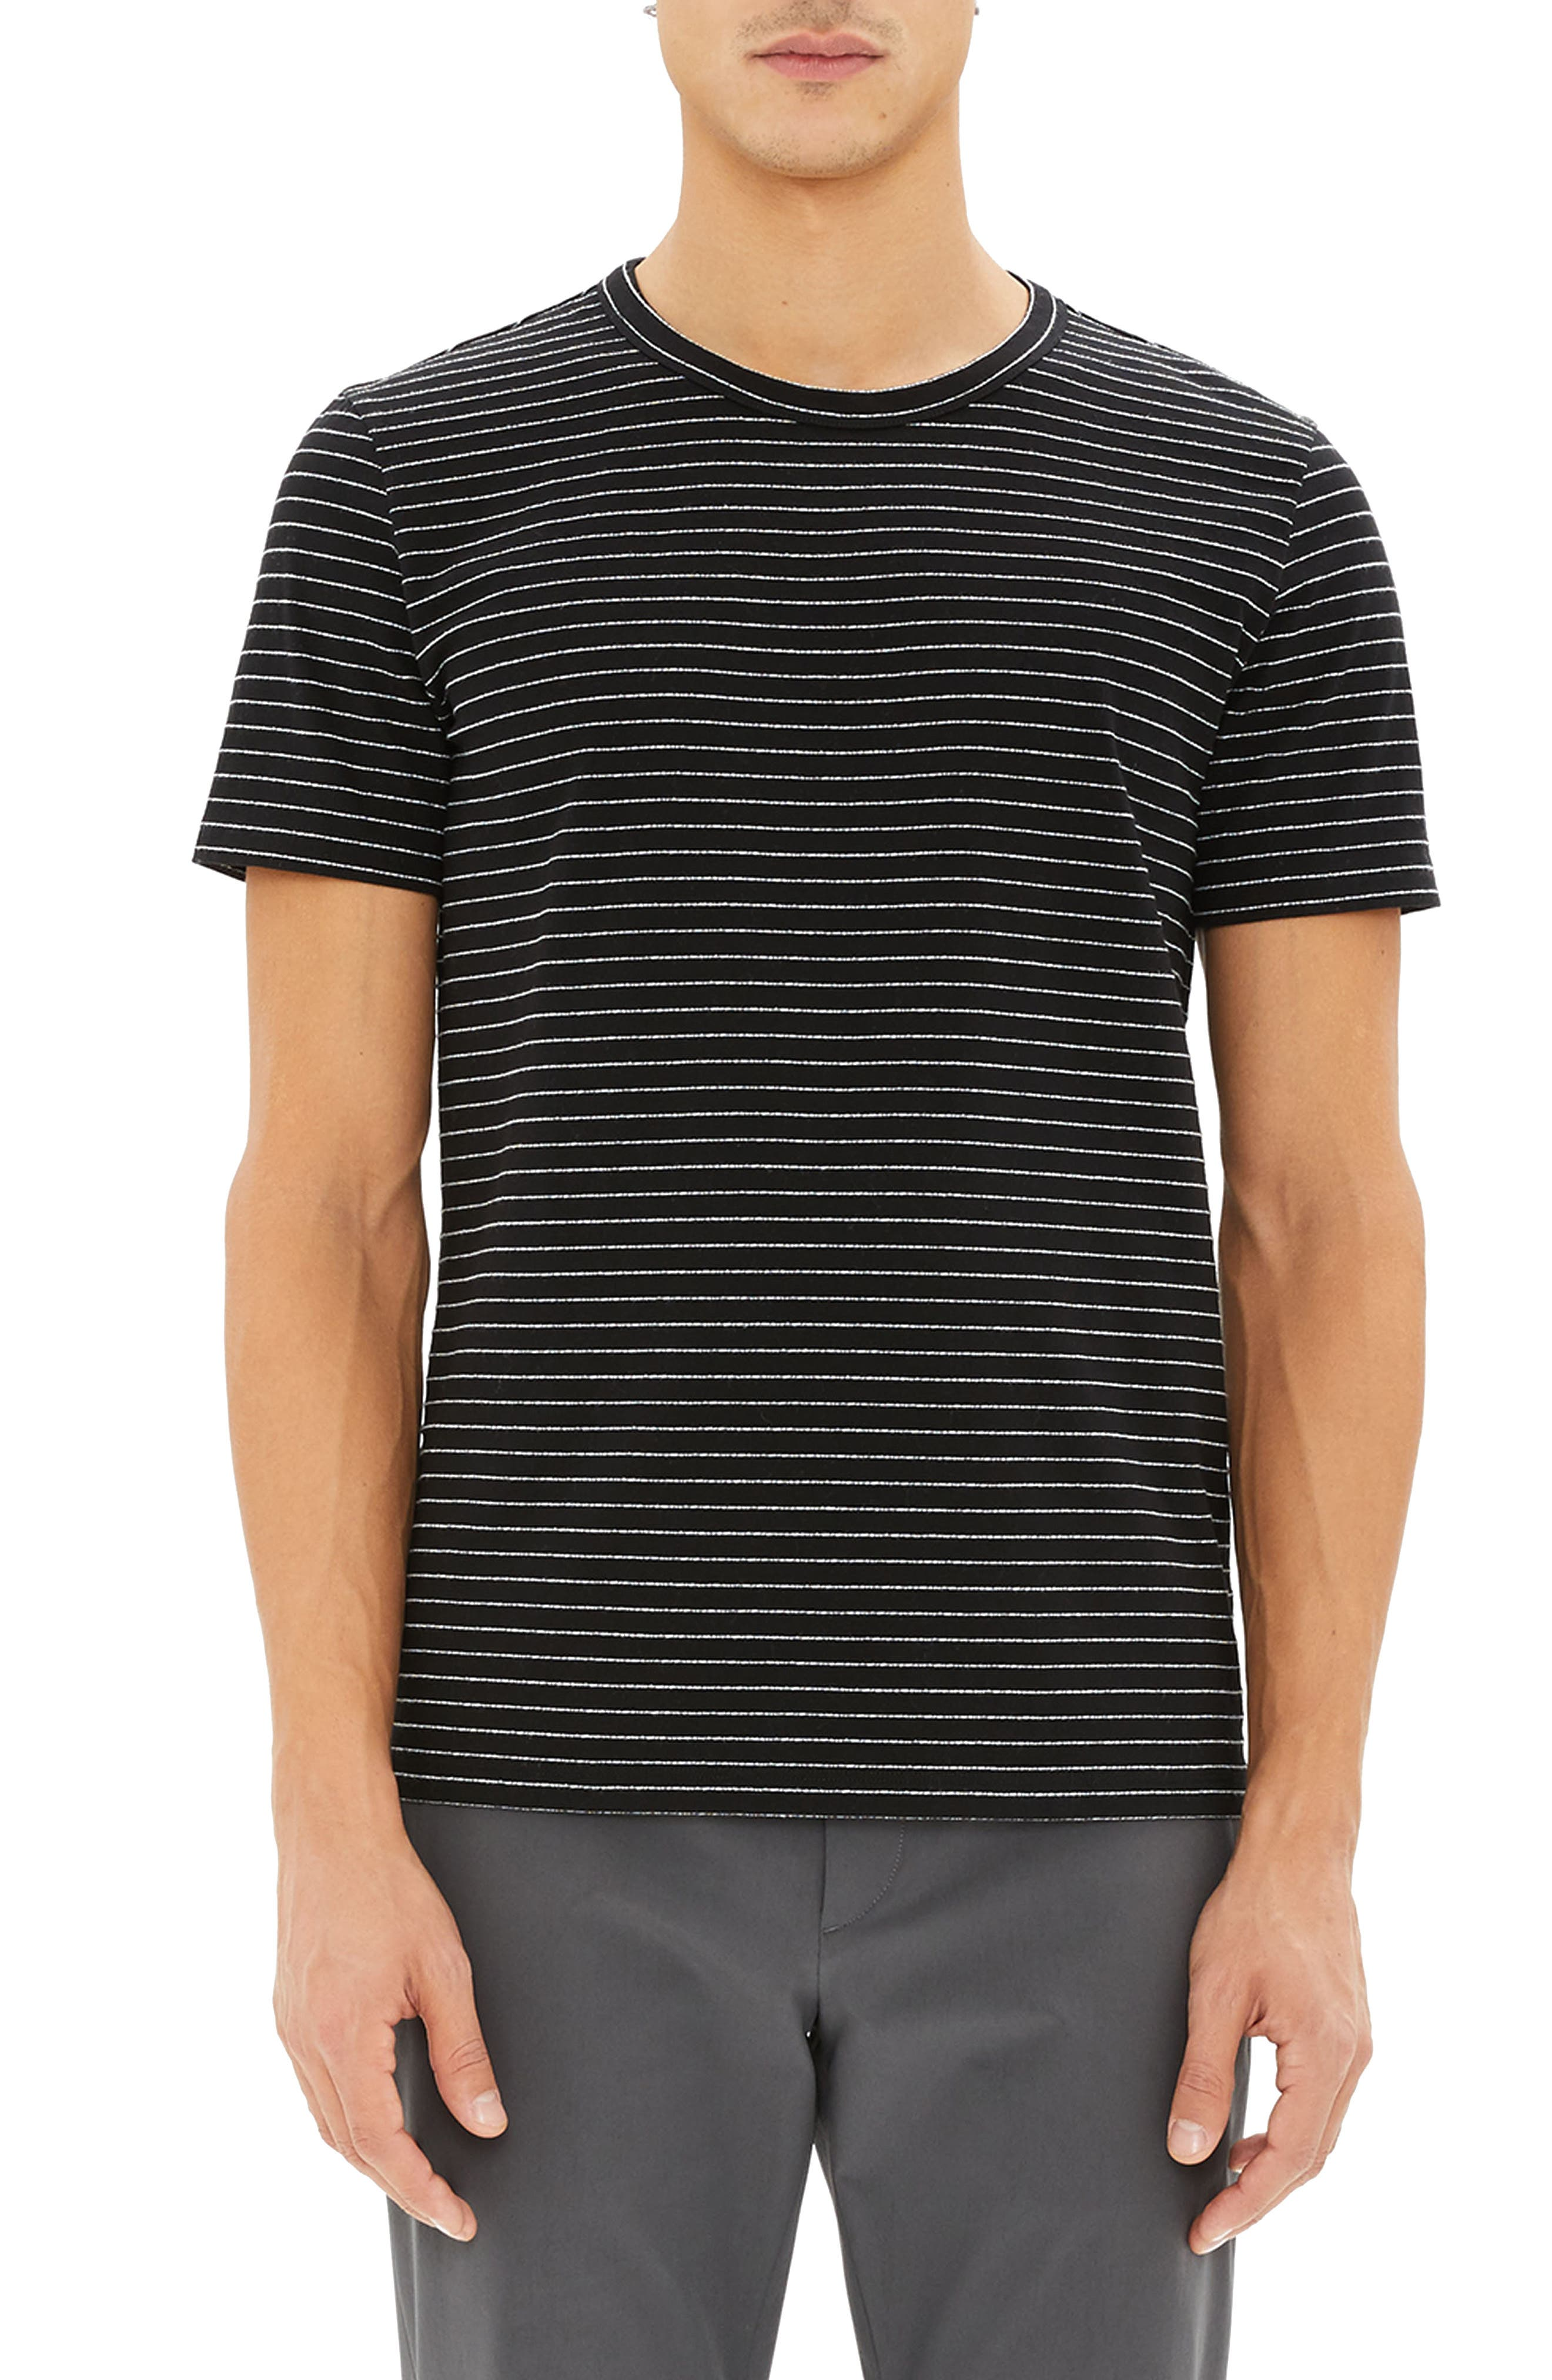 THEORY,                             Essential Striped T-Shirt,                             Main thumbnail 1, color,                             009